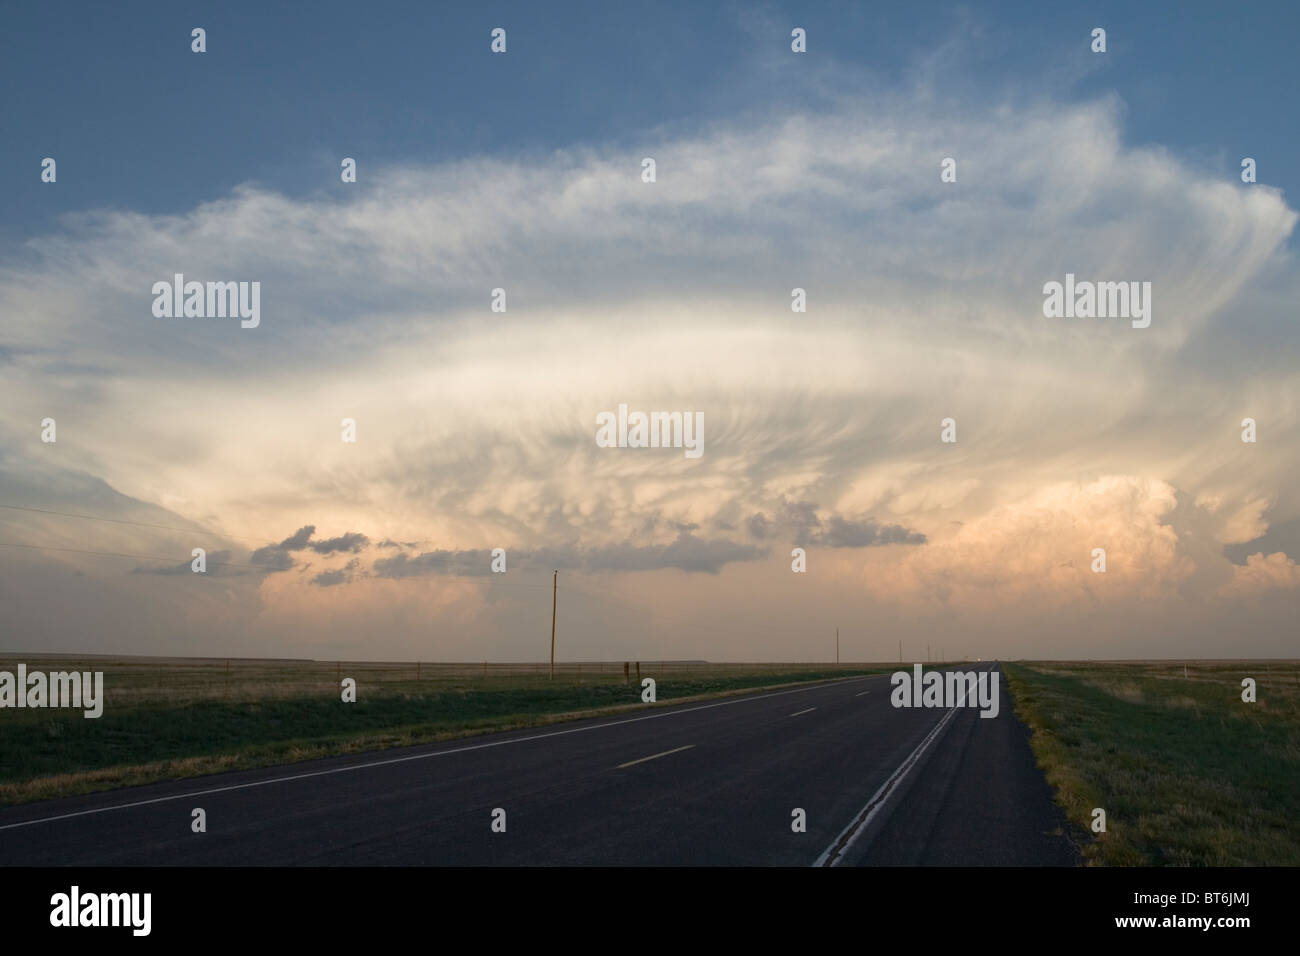 storm cloud above the horizon in the evening - Stock Image